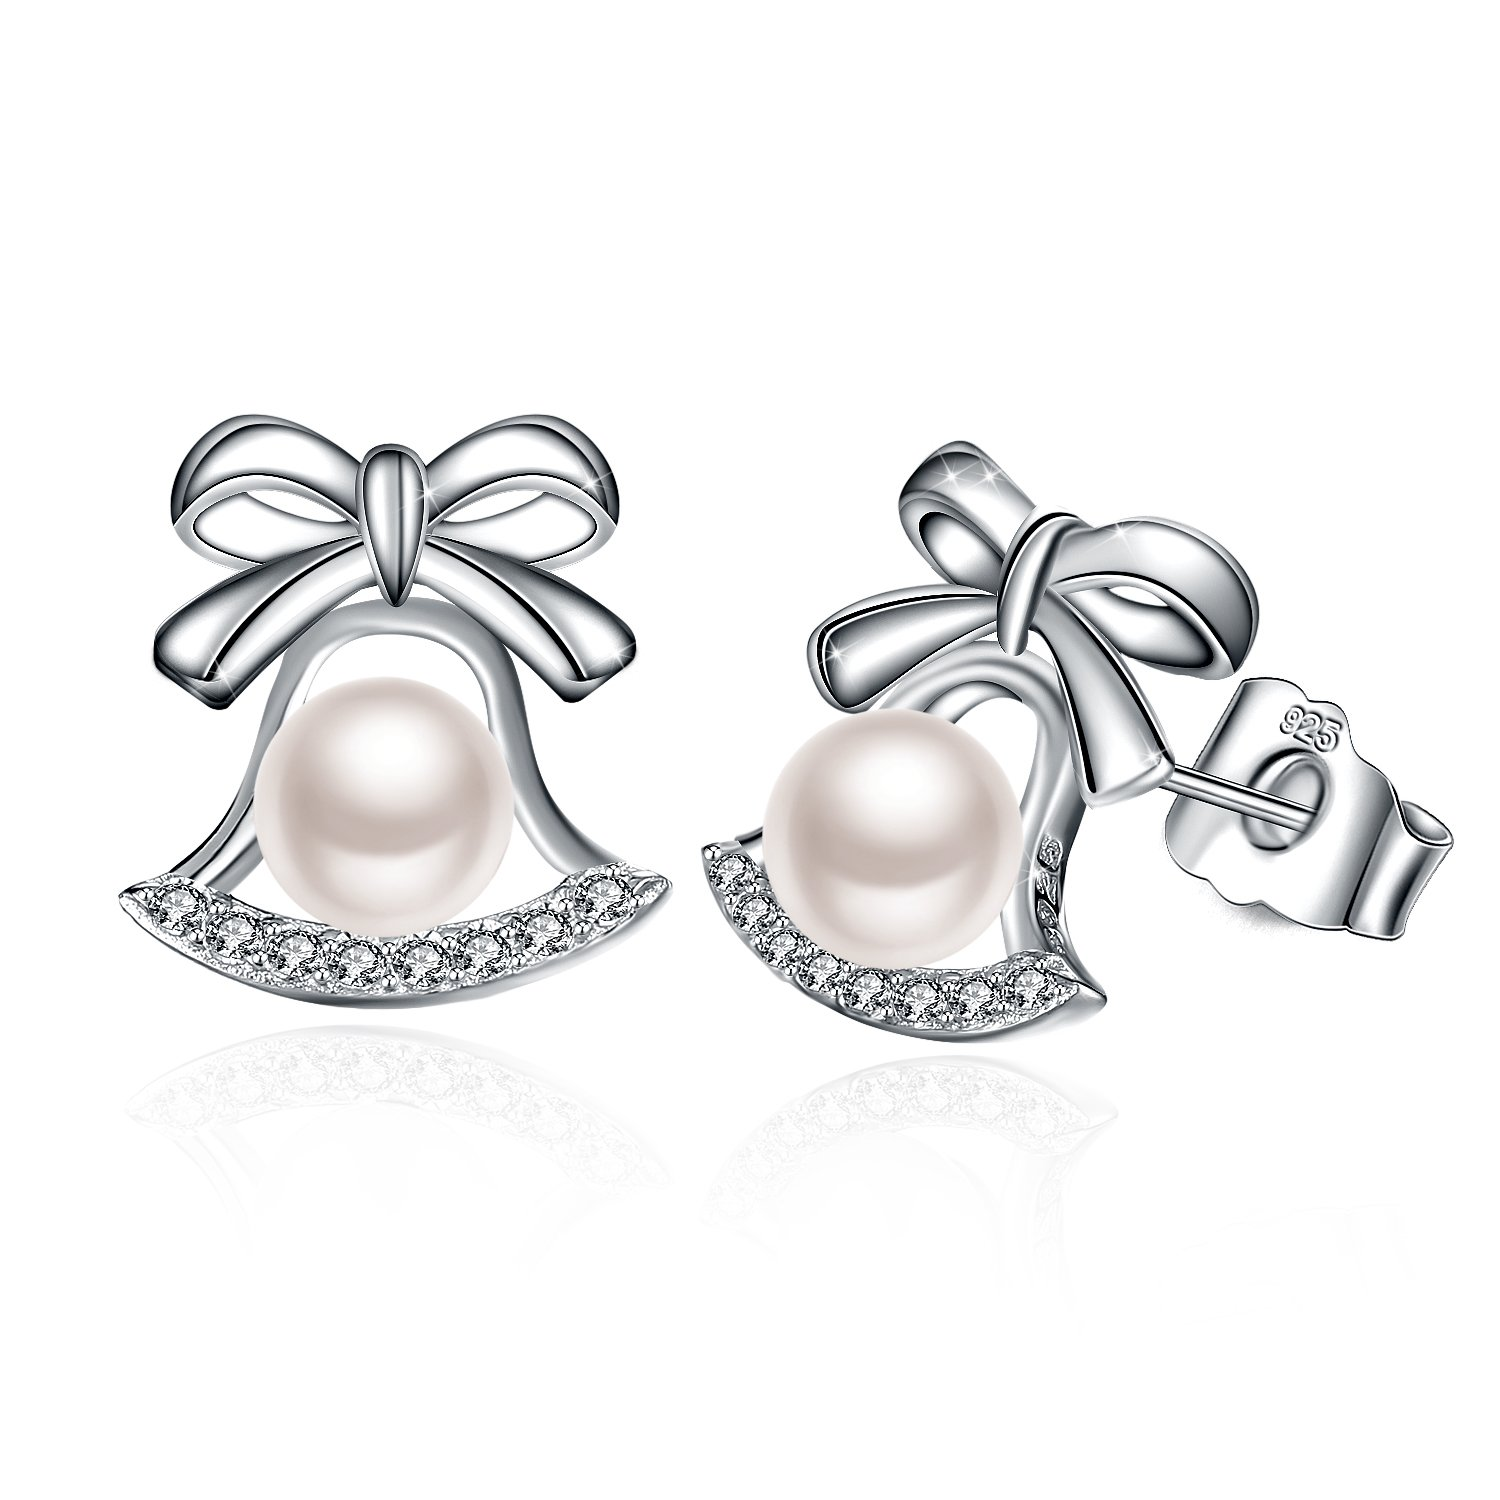 J.Rosée Earrings, Simulated Pearl Stud Earrings 925 Sterling Silver, Jewelry Gifts for Women Girls